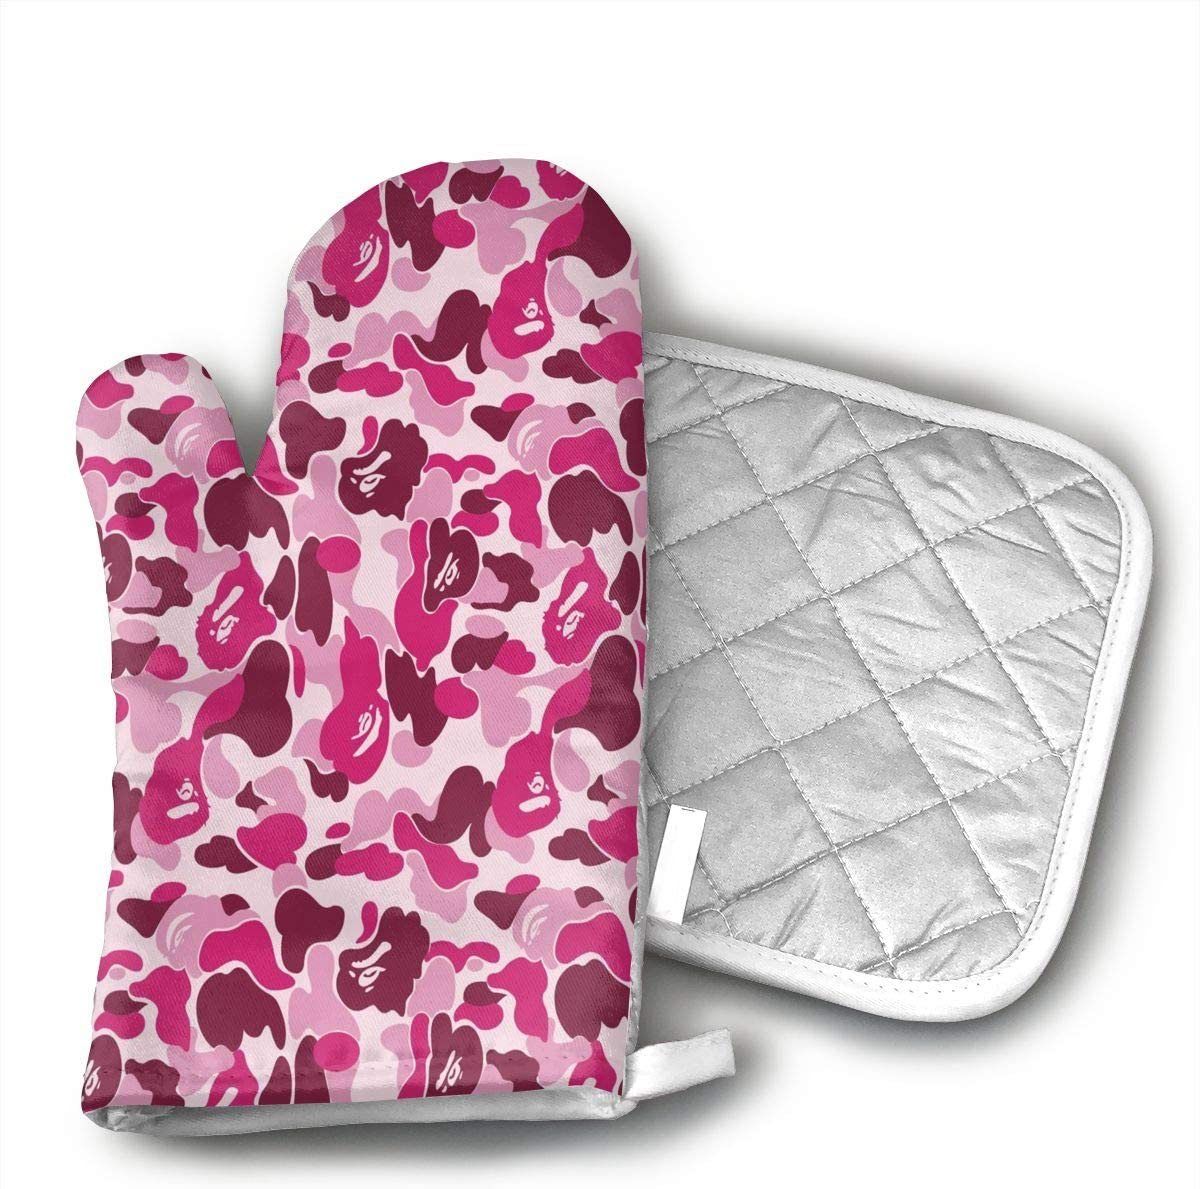 Pink Camo Oven Mitts, Professional Heat Resistant Microwave BBQ Oven Insulation Thickening Cotton Gloves Baking Pot Mitts with Soft Inner Lining